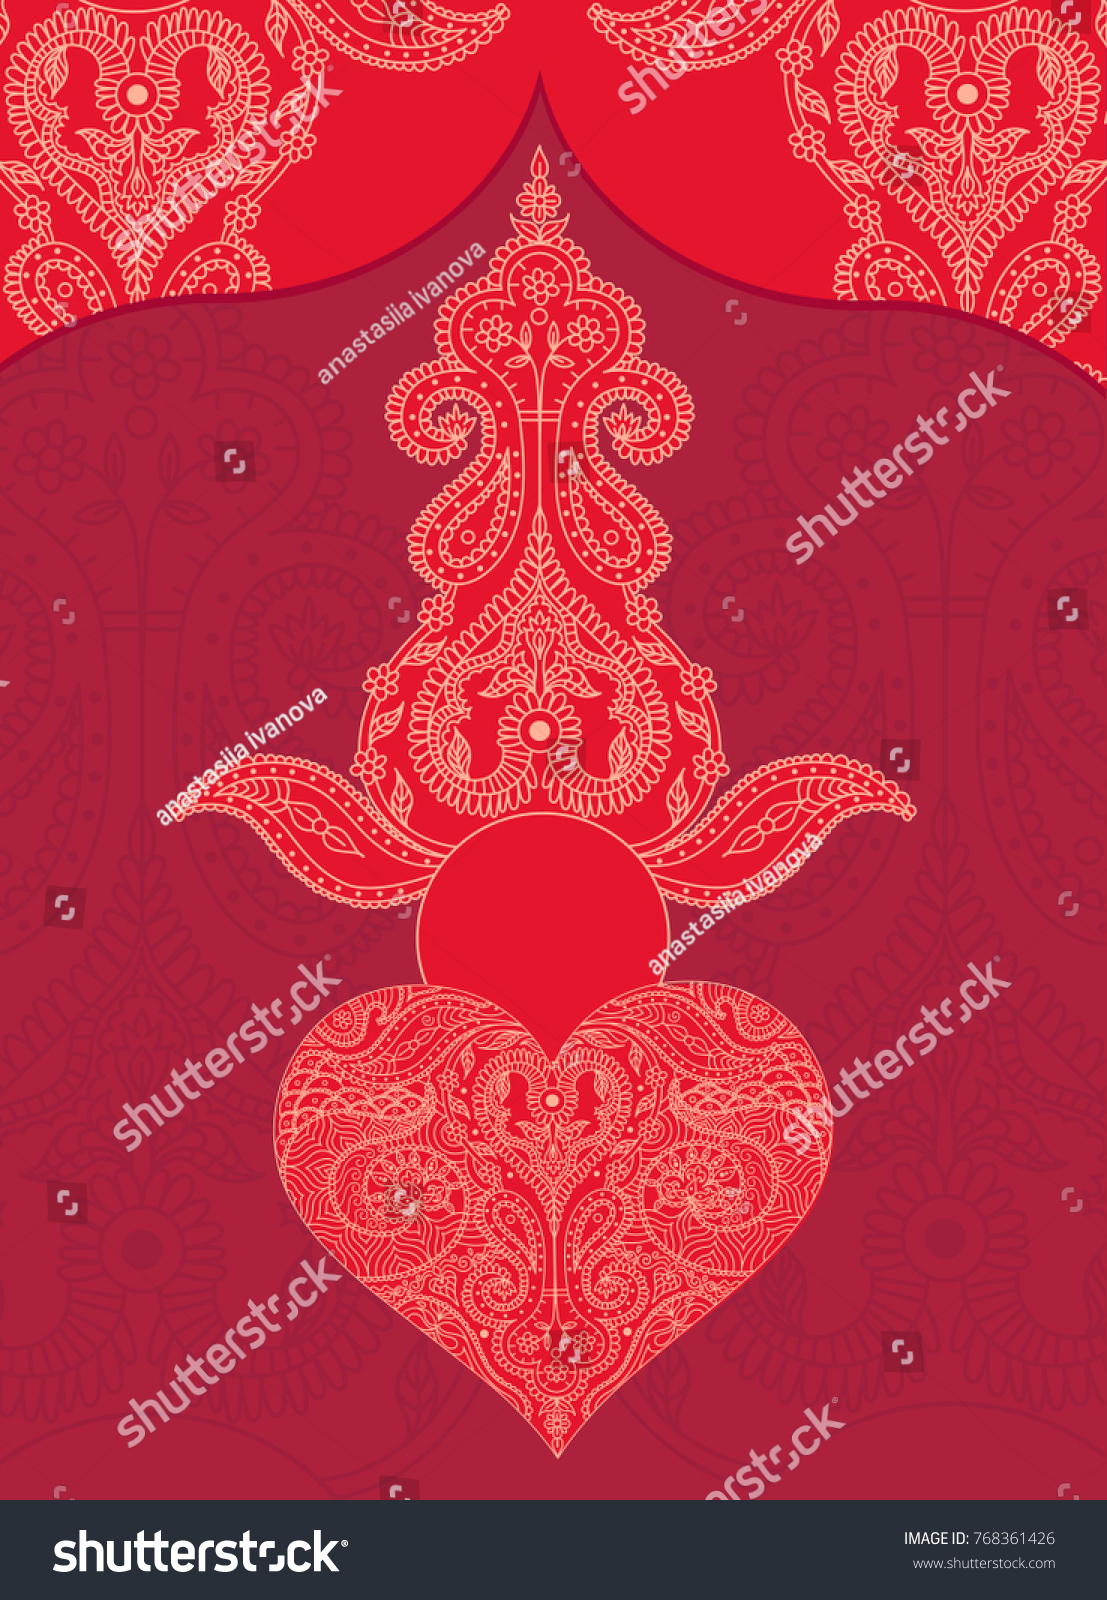 Wedding Indian Red Color Invitation Card Stock Vector 768361426 ...